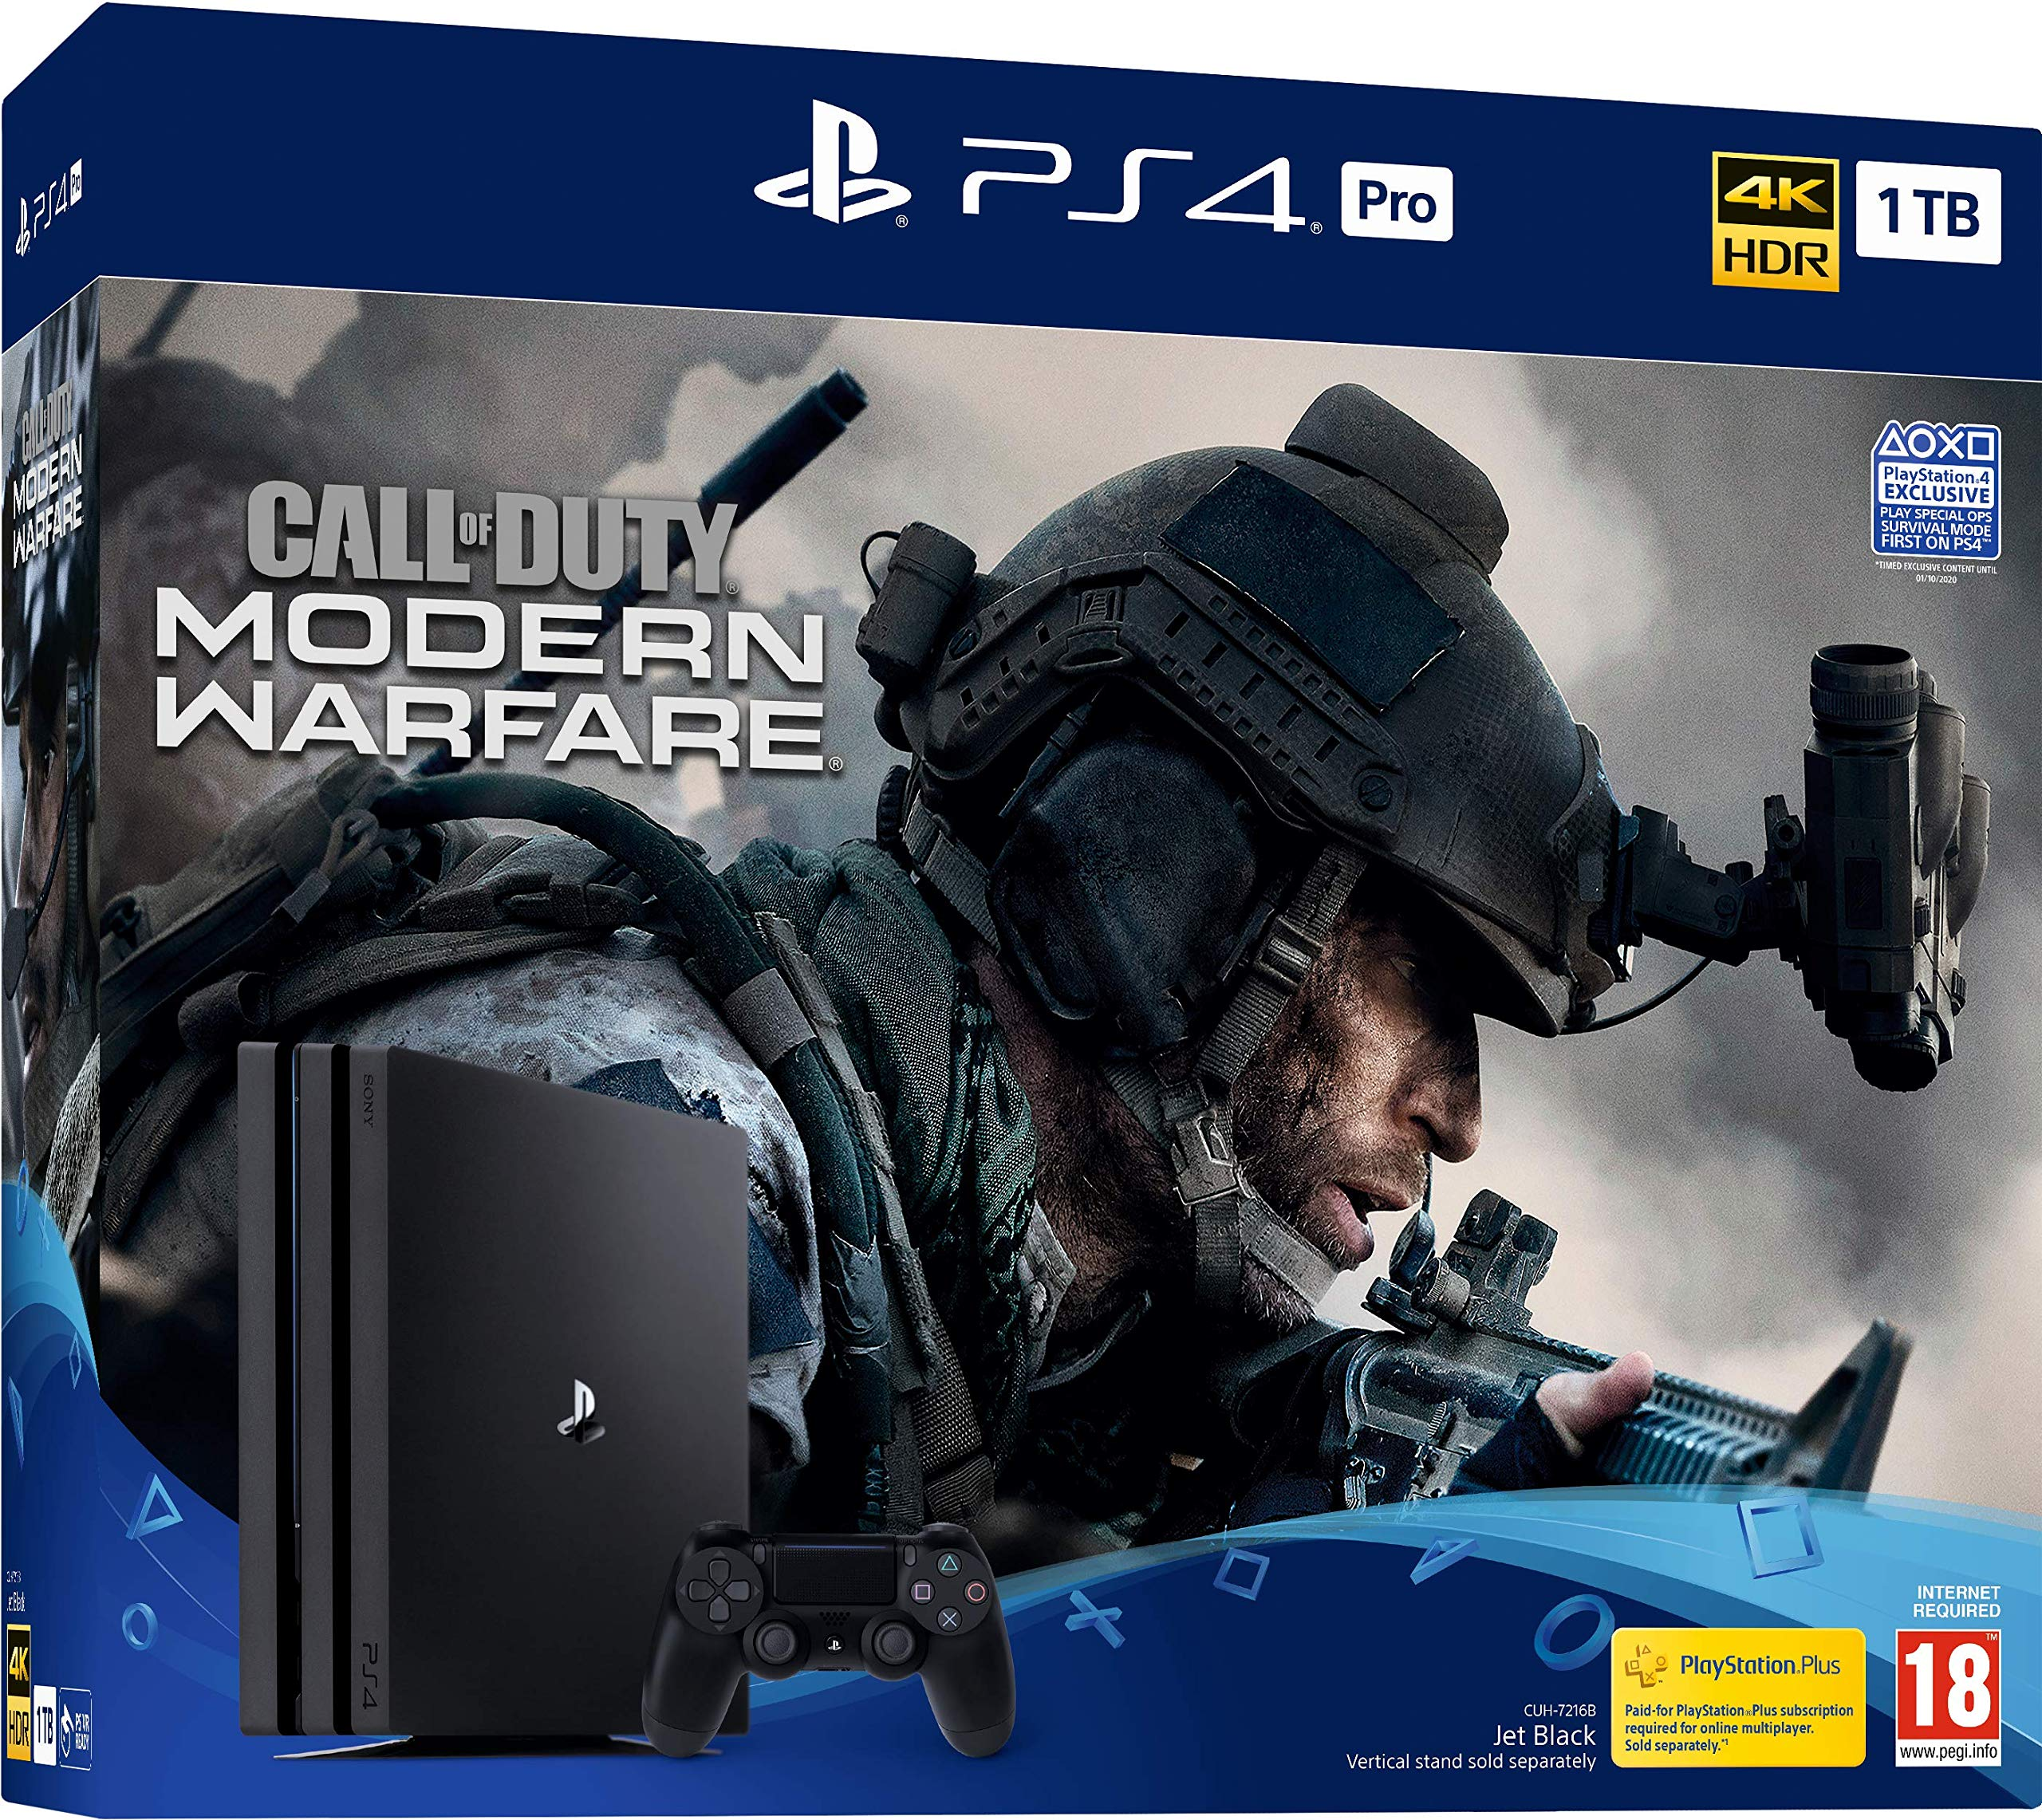 Call Of Duty: Modern Warfare PS4 Pro Bundle - PlayStation 4 ...